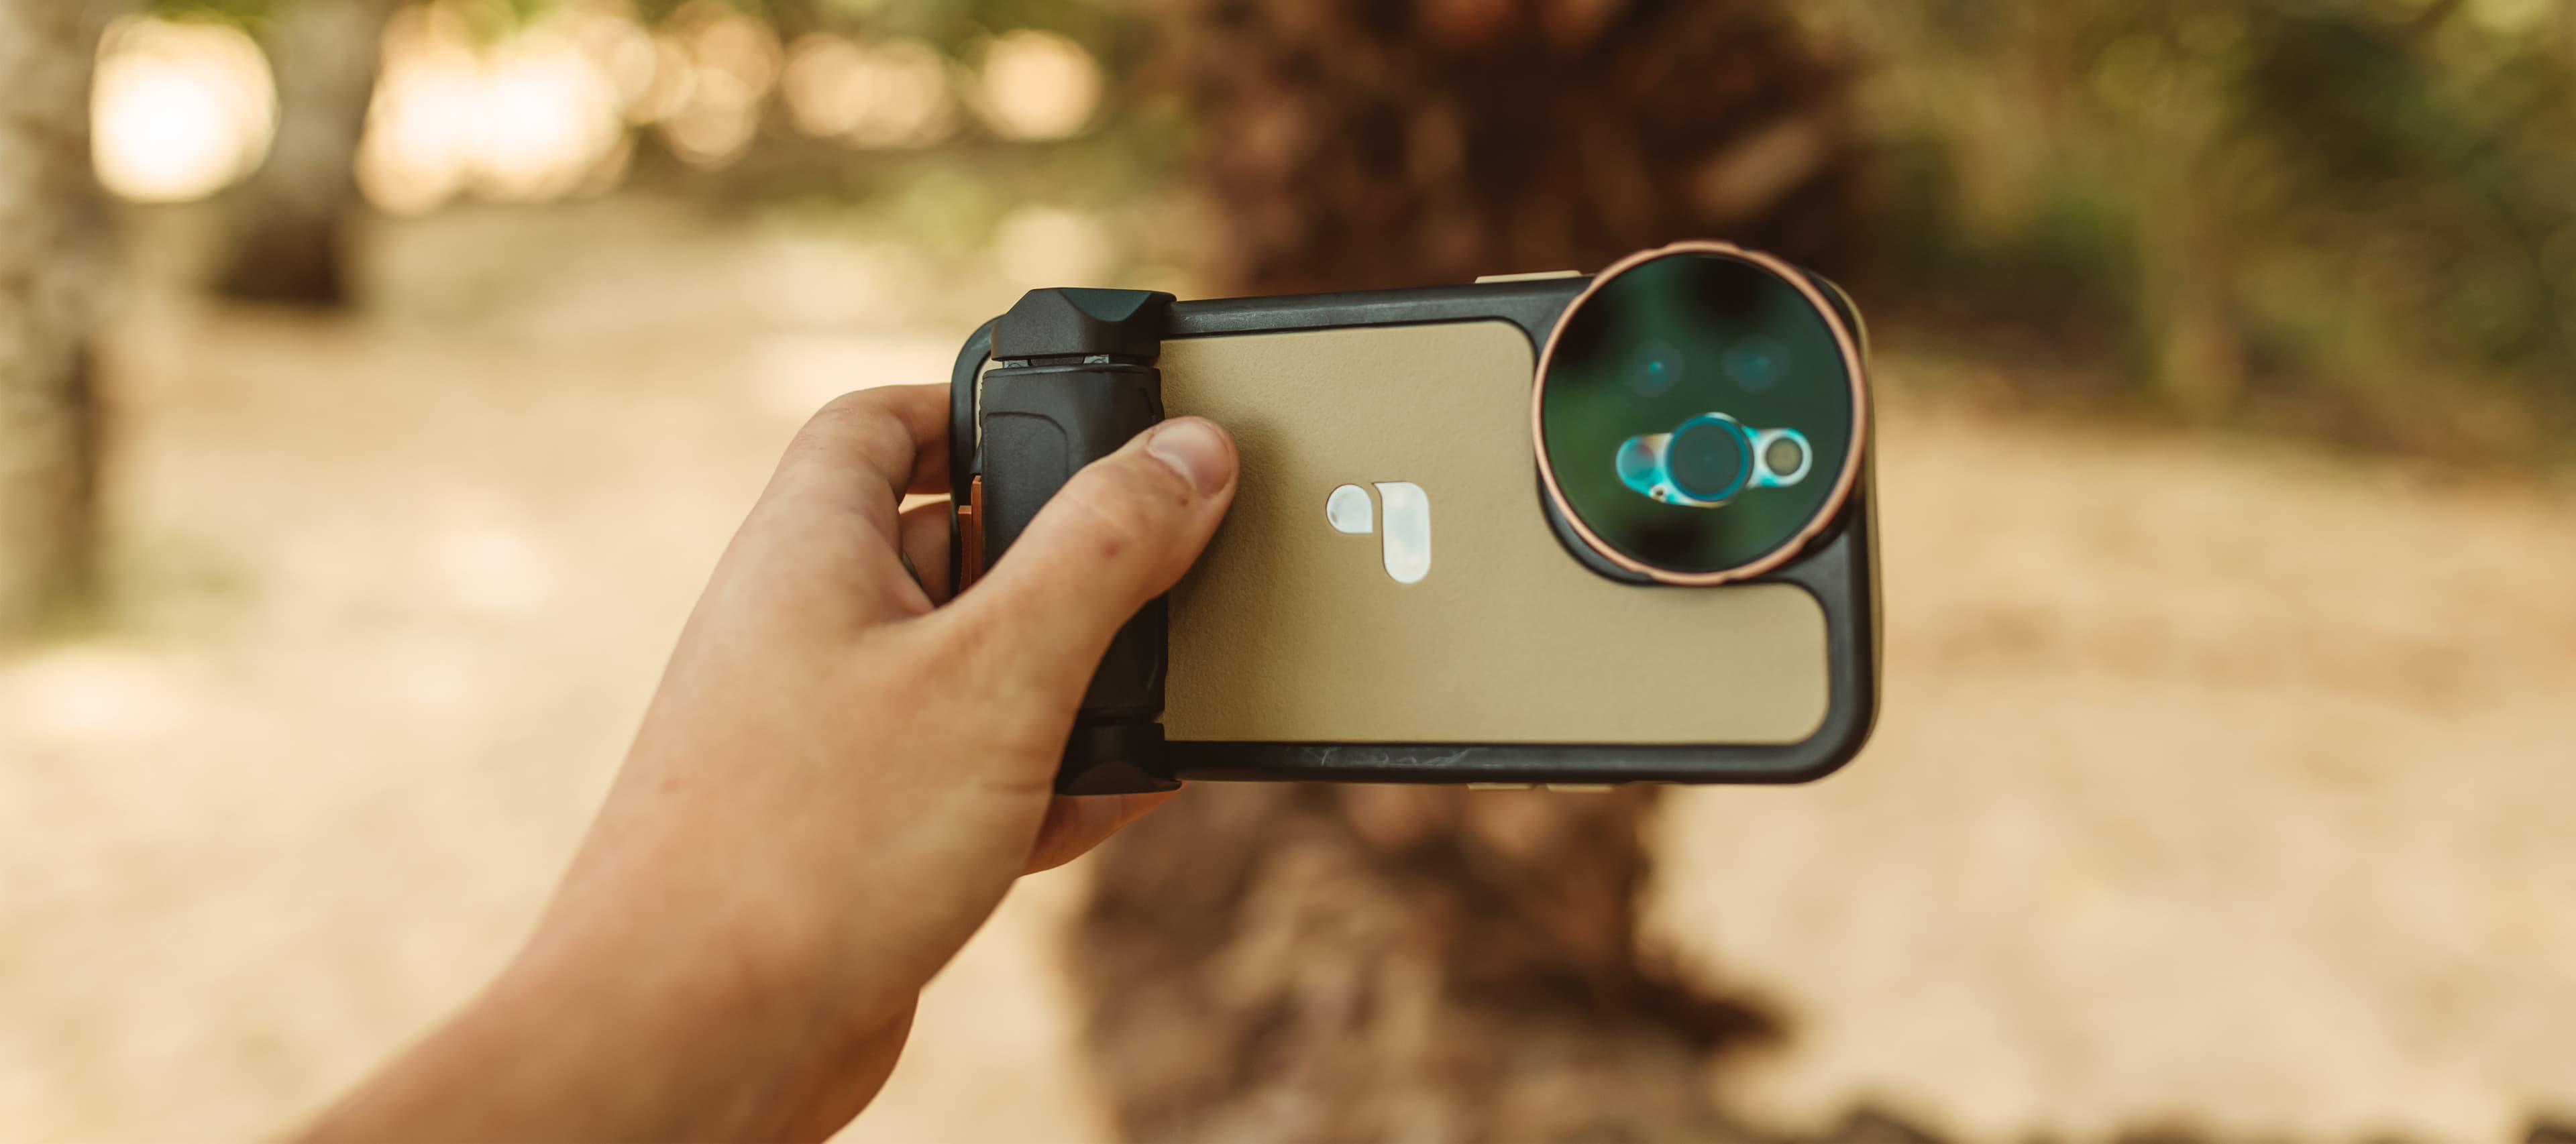 iPhone video, iPhone videography, Cinematic iPhone video